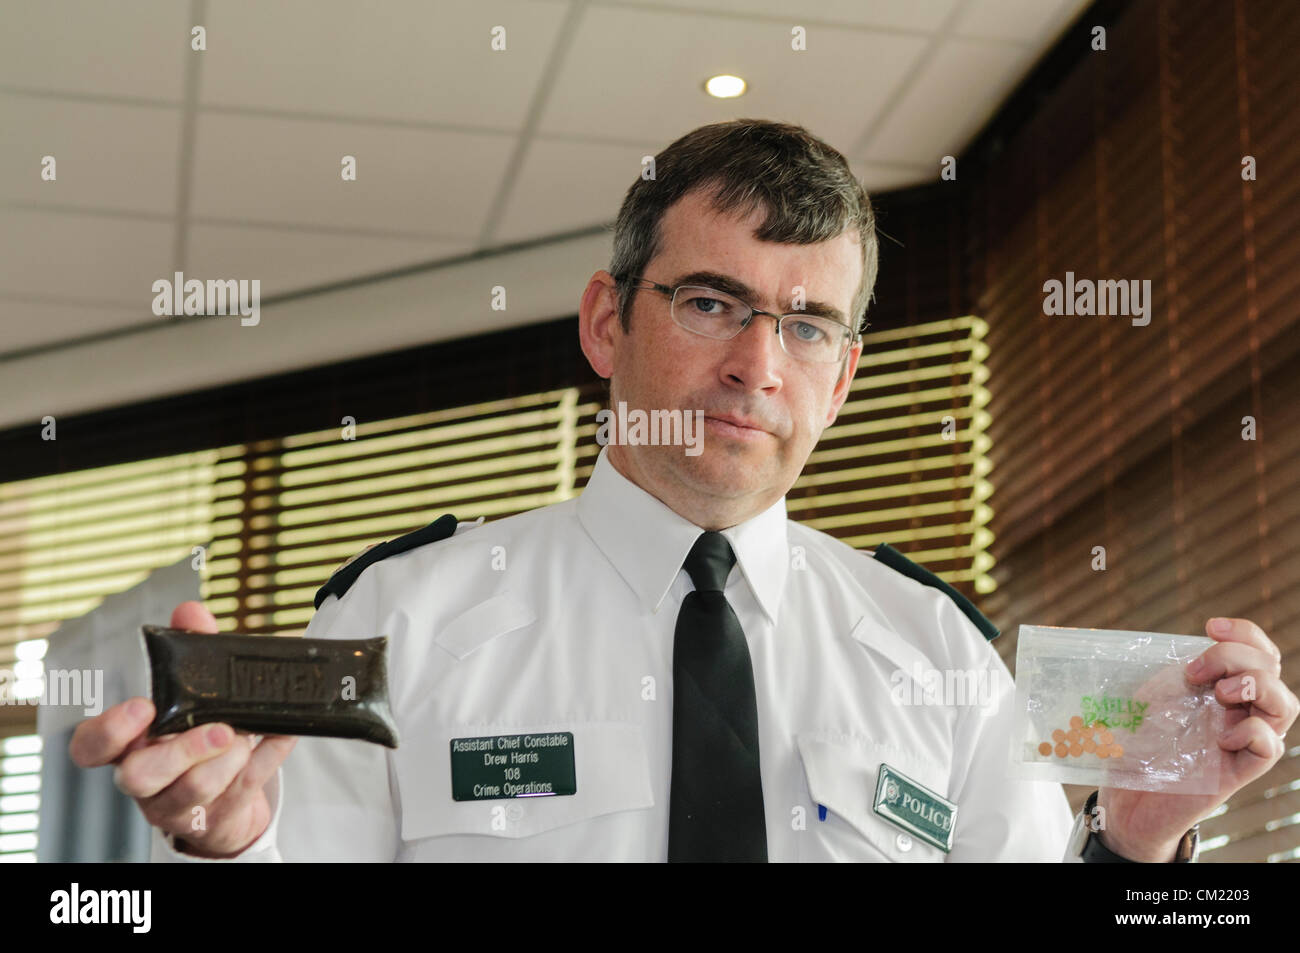 Belfast 17/09/2012 - PSNI Assistant Chief Constable Drew Harris launches their anti-drugs campaign 'Operation - Stock Image